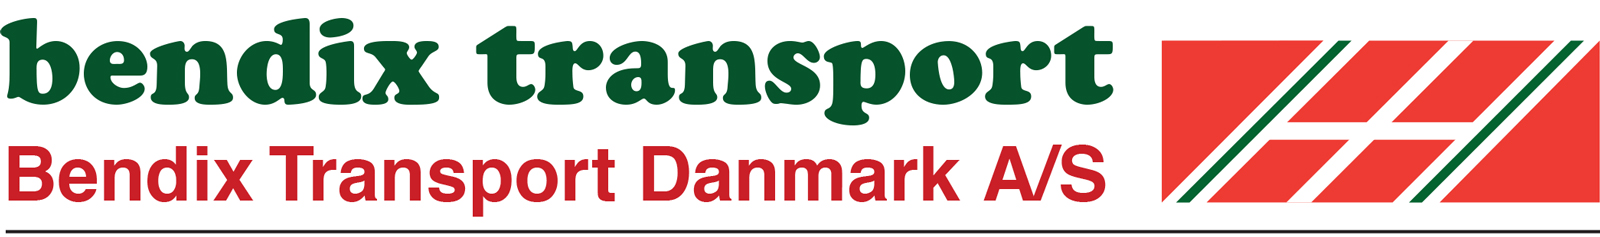 Stacks Image 32